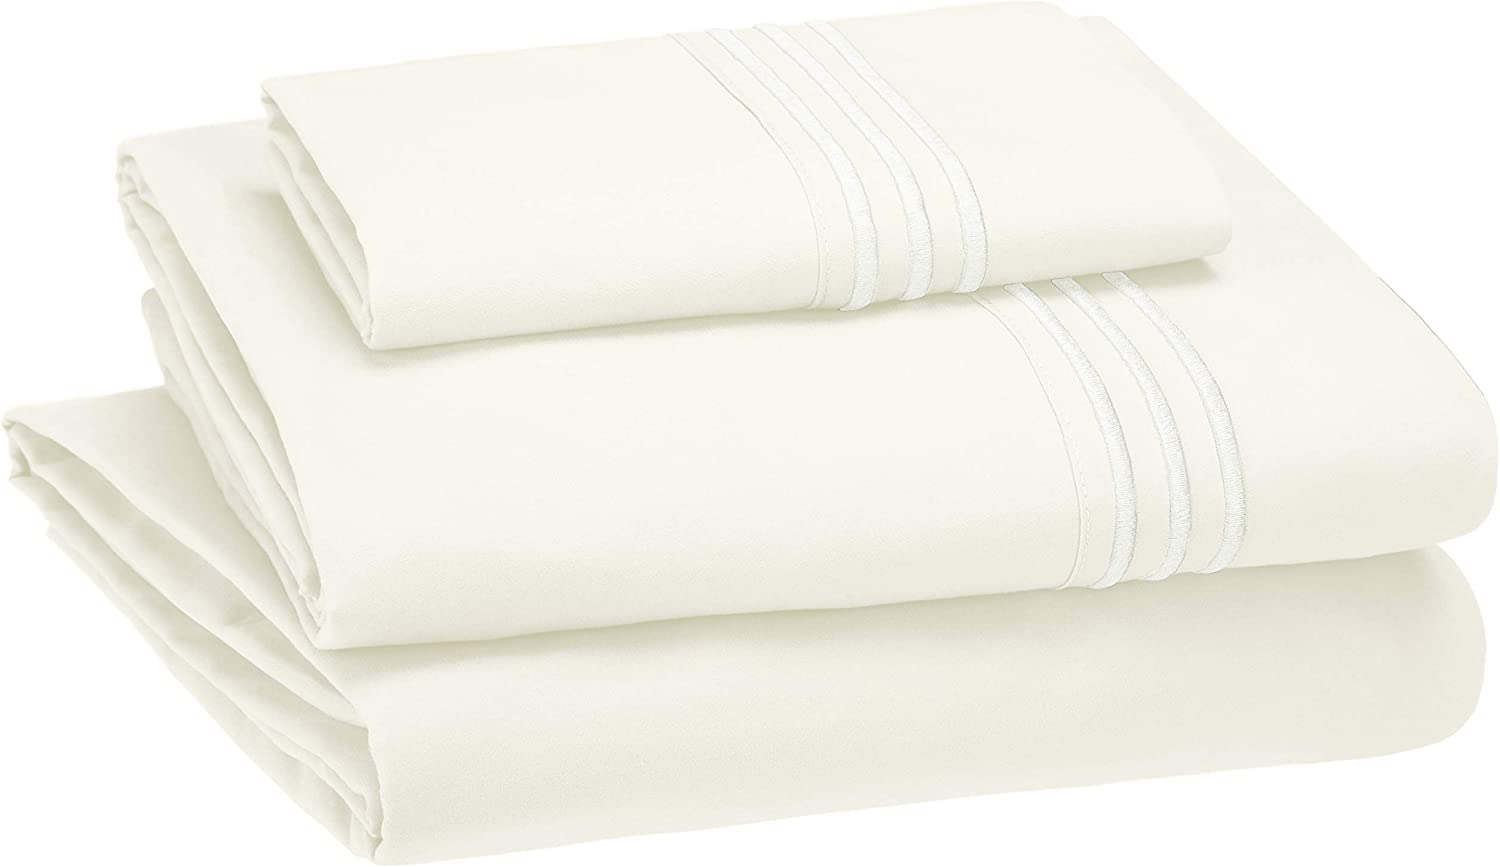 AmazonBasics Premium, Easy-Wash Embroidered Hotel Stitch 120 GSM Sheet Set - Twin, Off-White